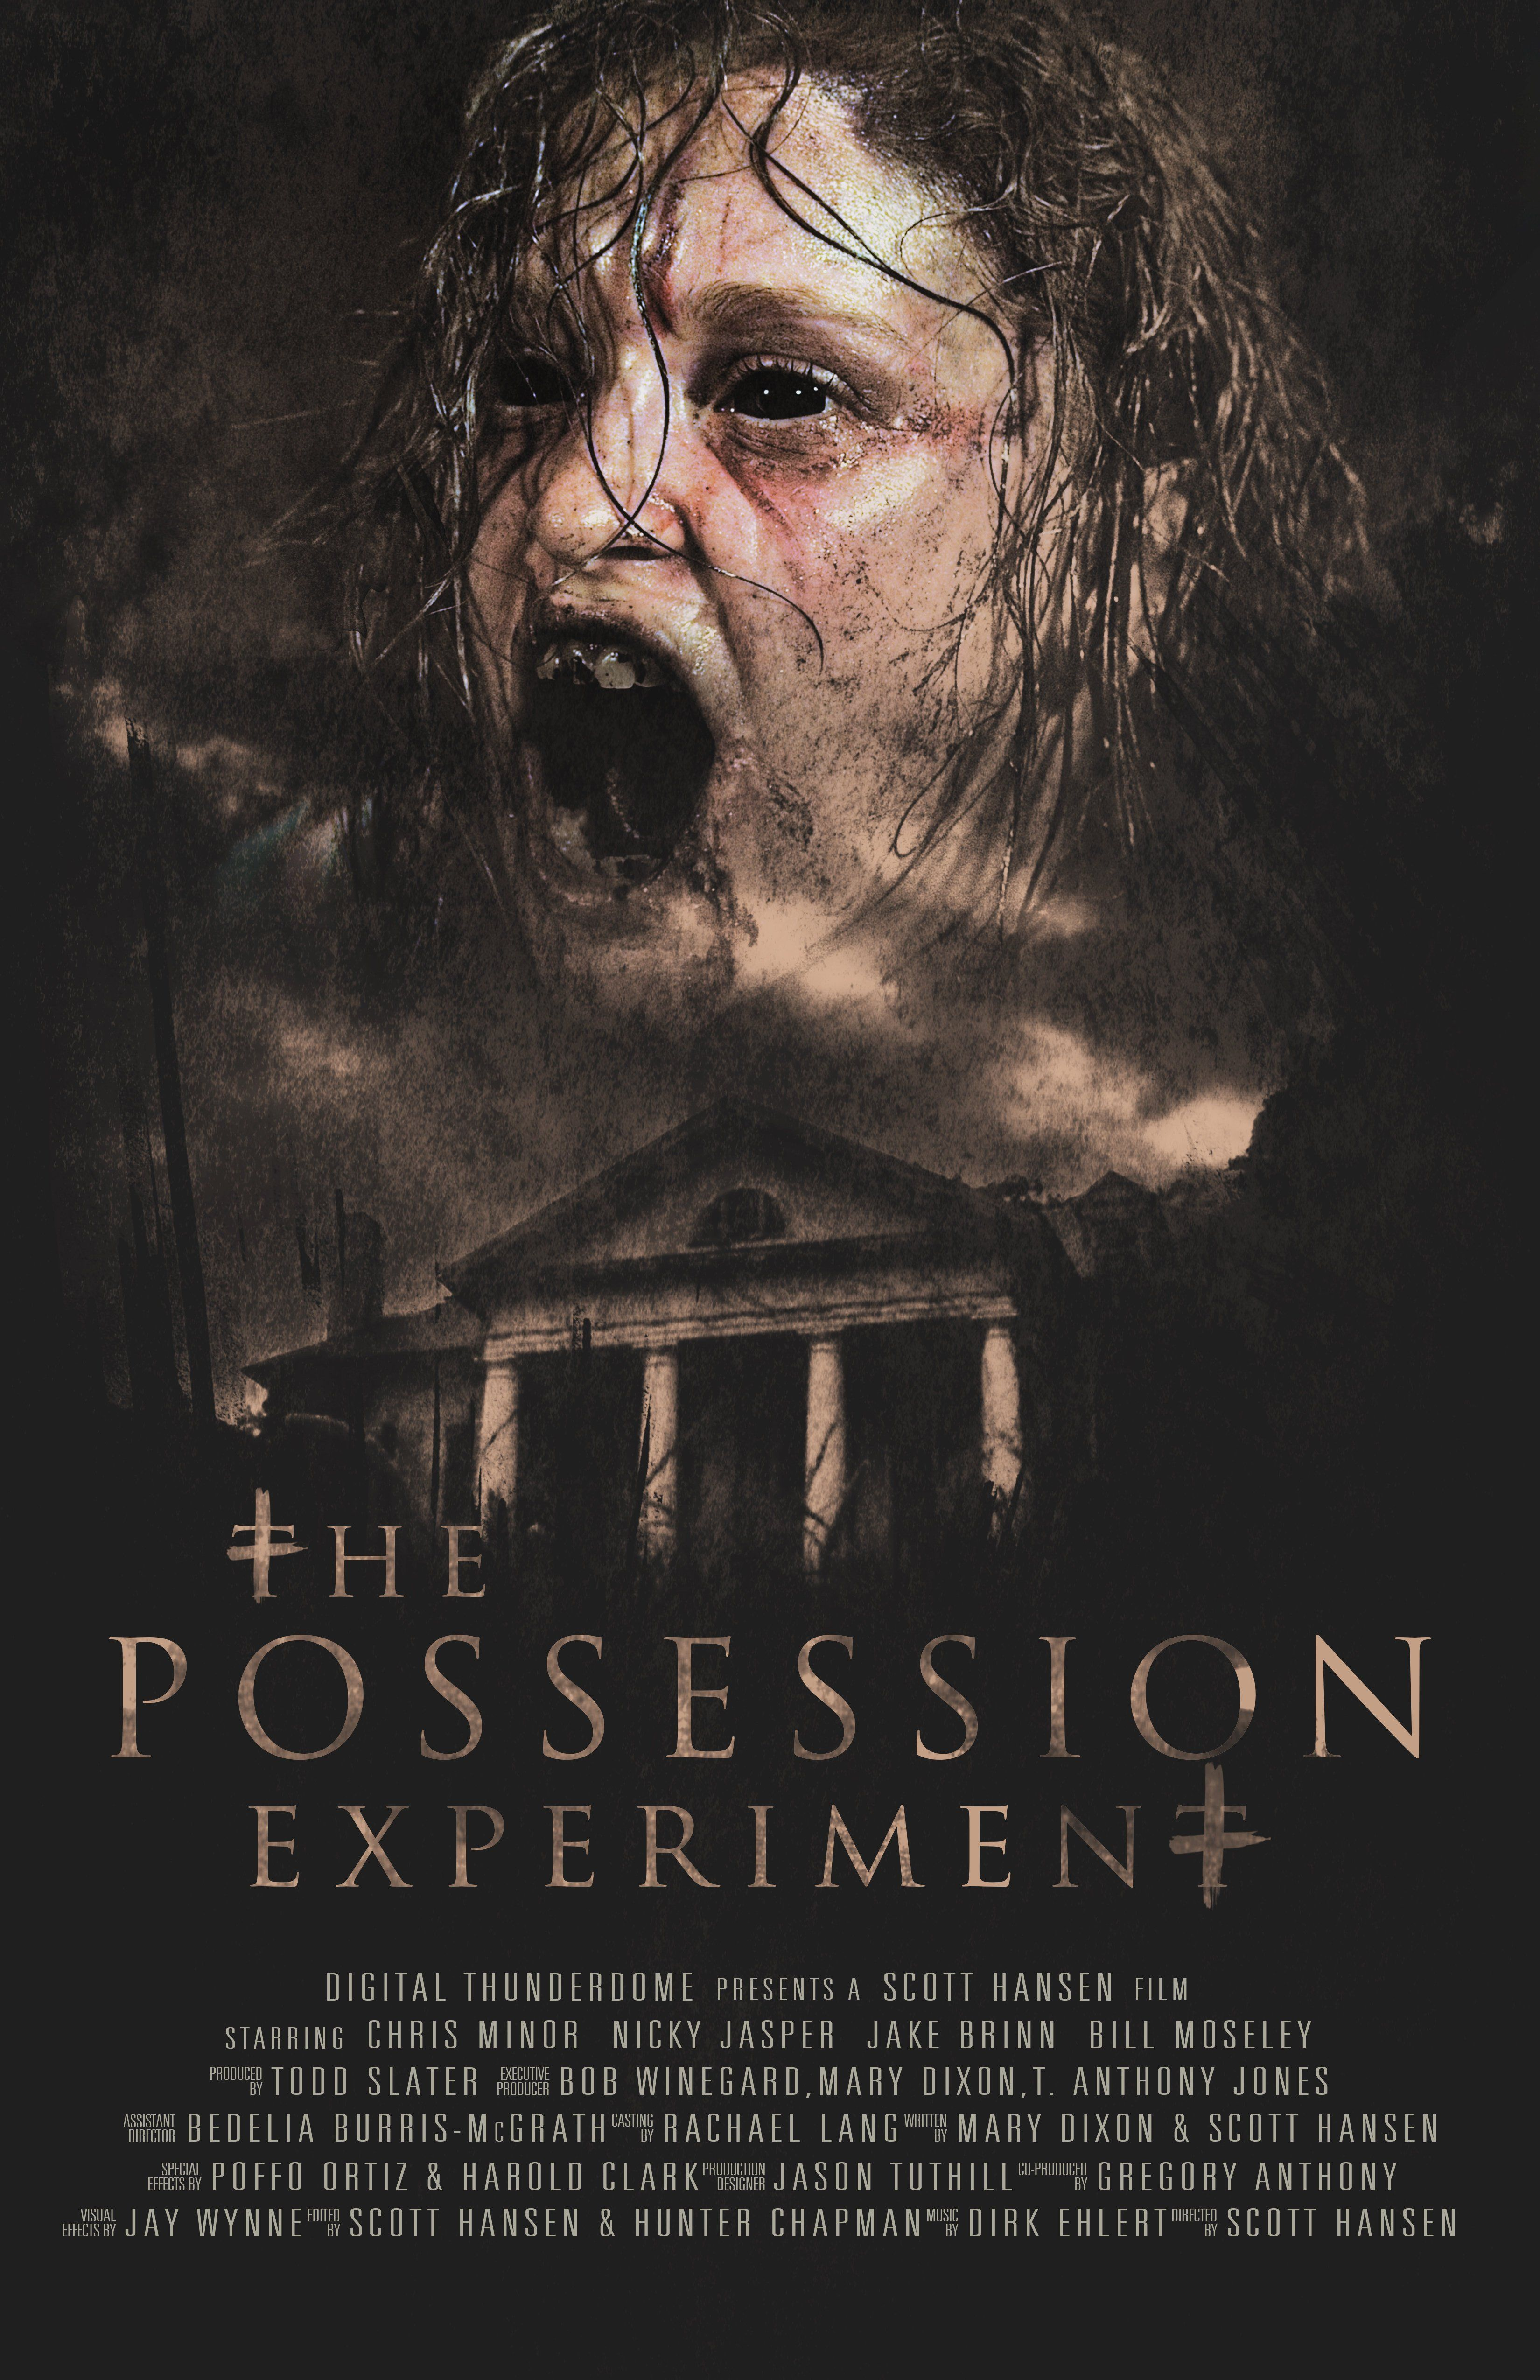 The possession movie poster 2017